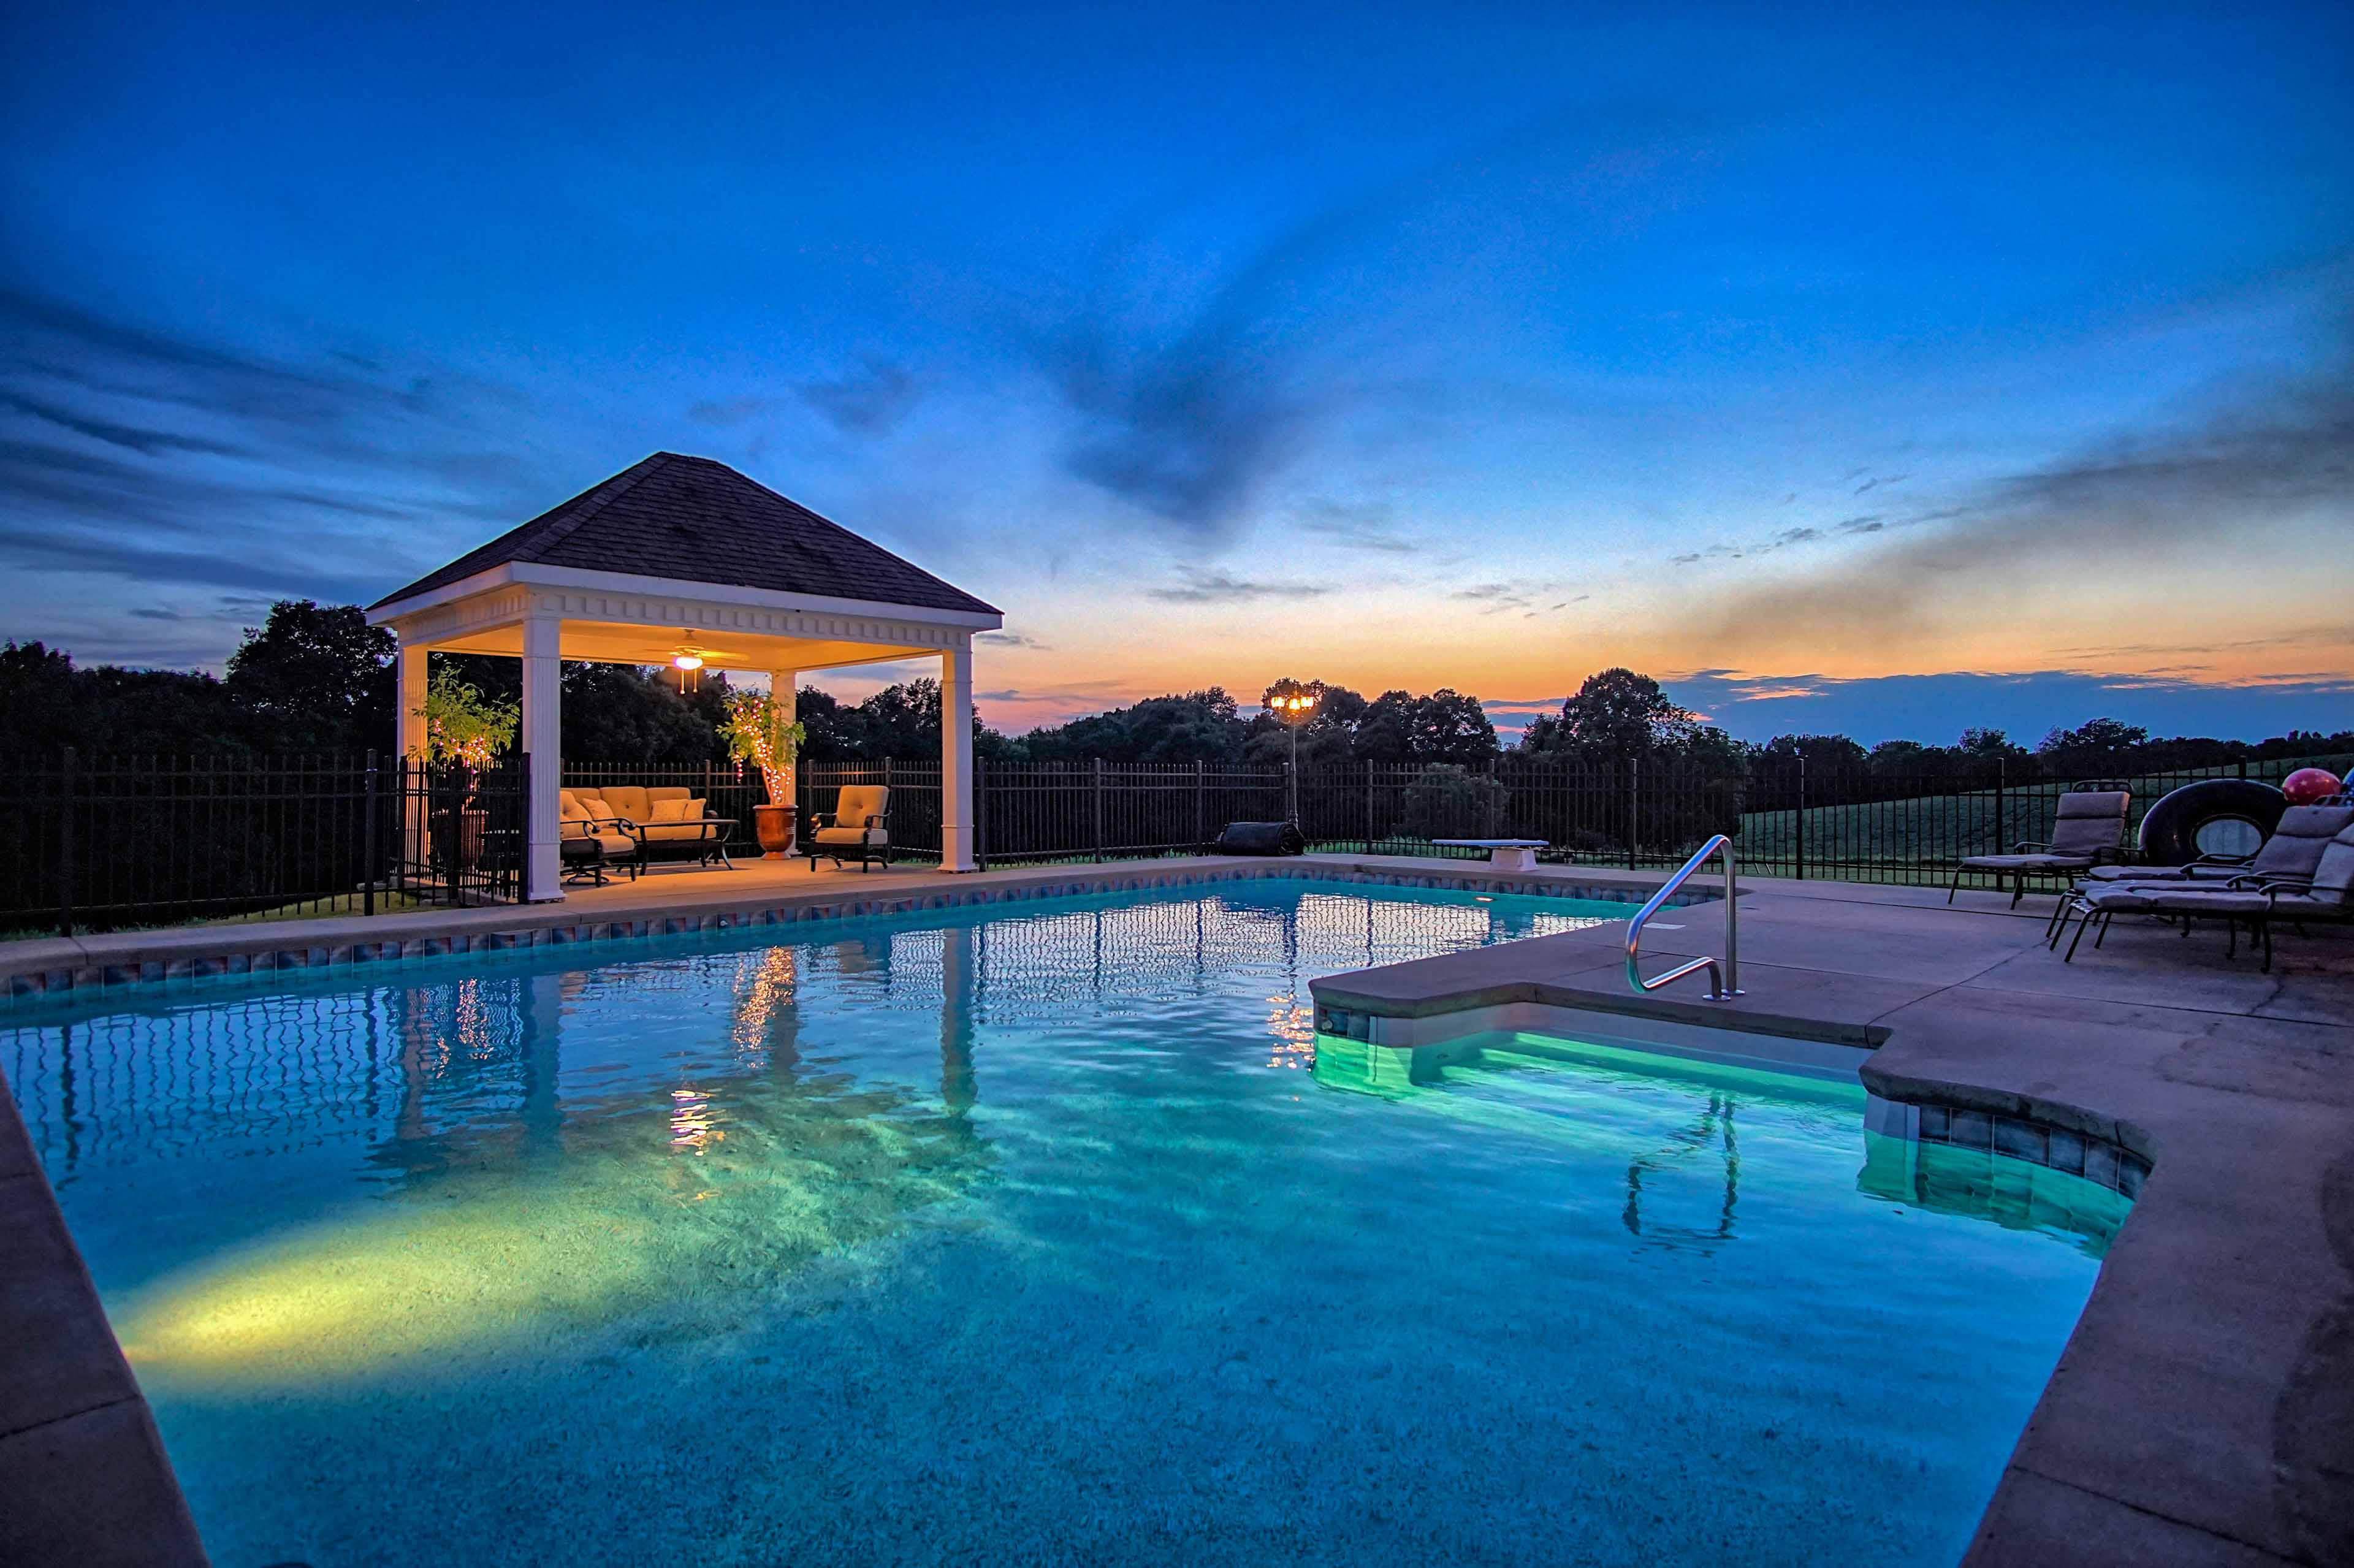 This vacation rental home comfortably sleeps groups of up to 10.